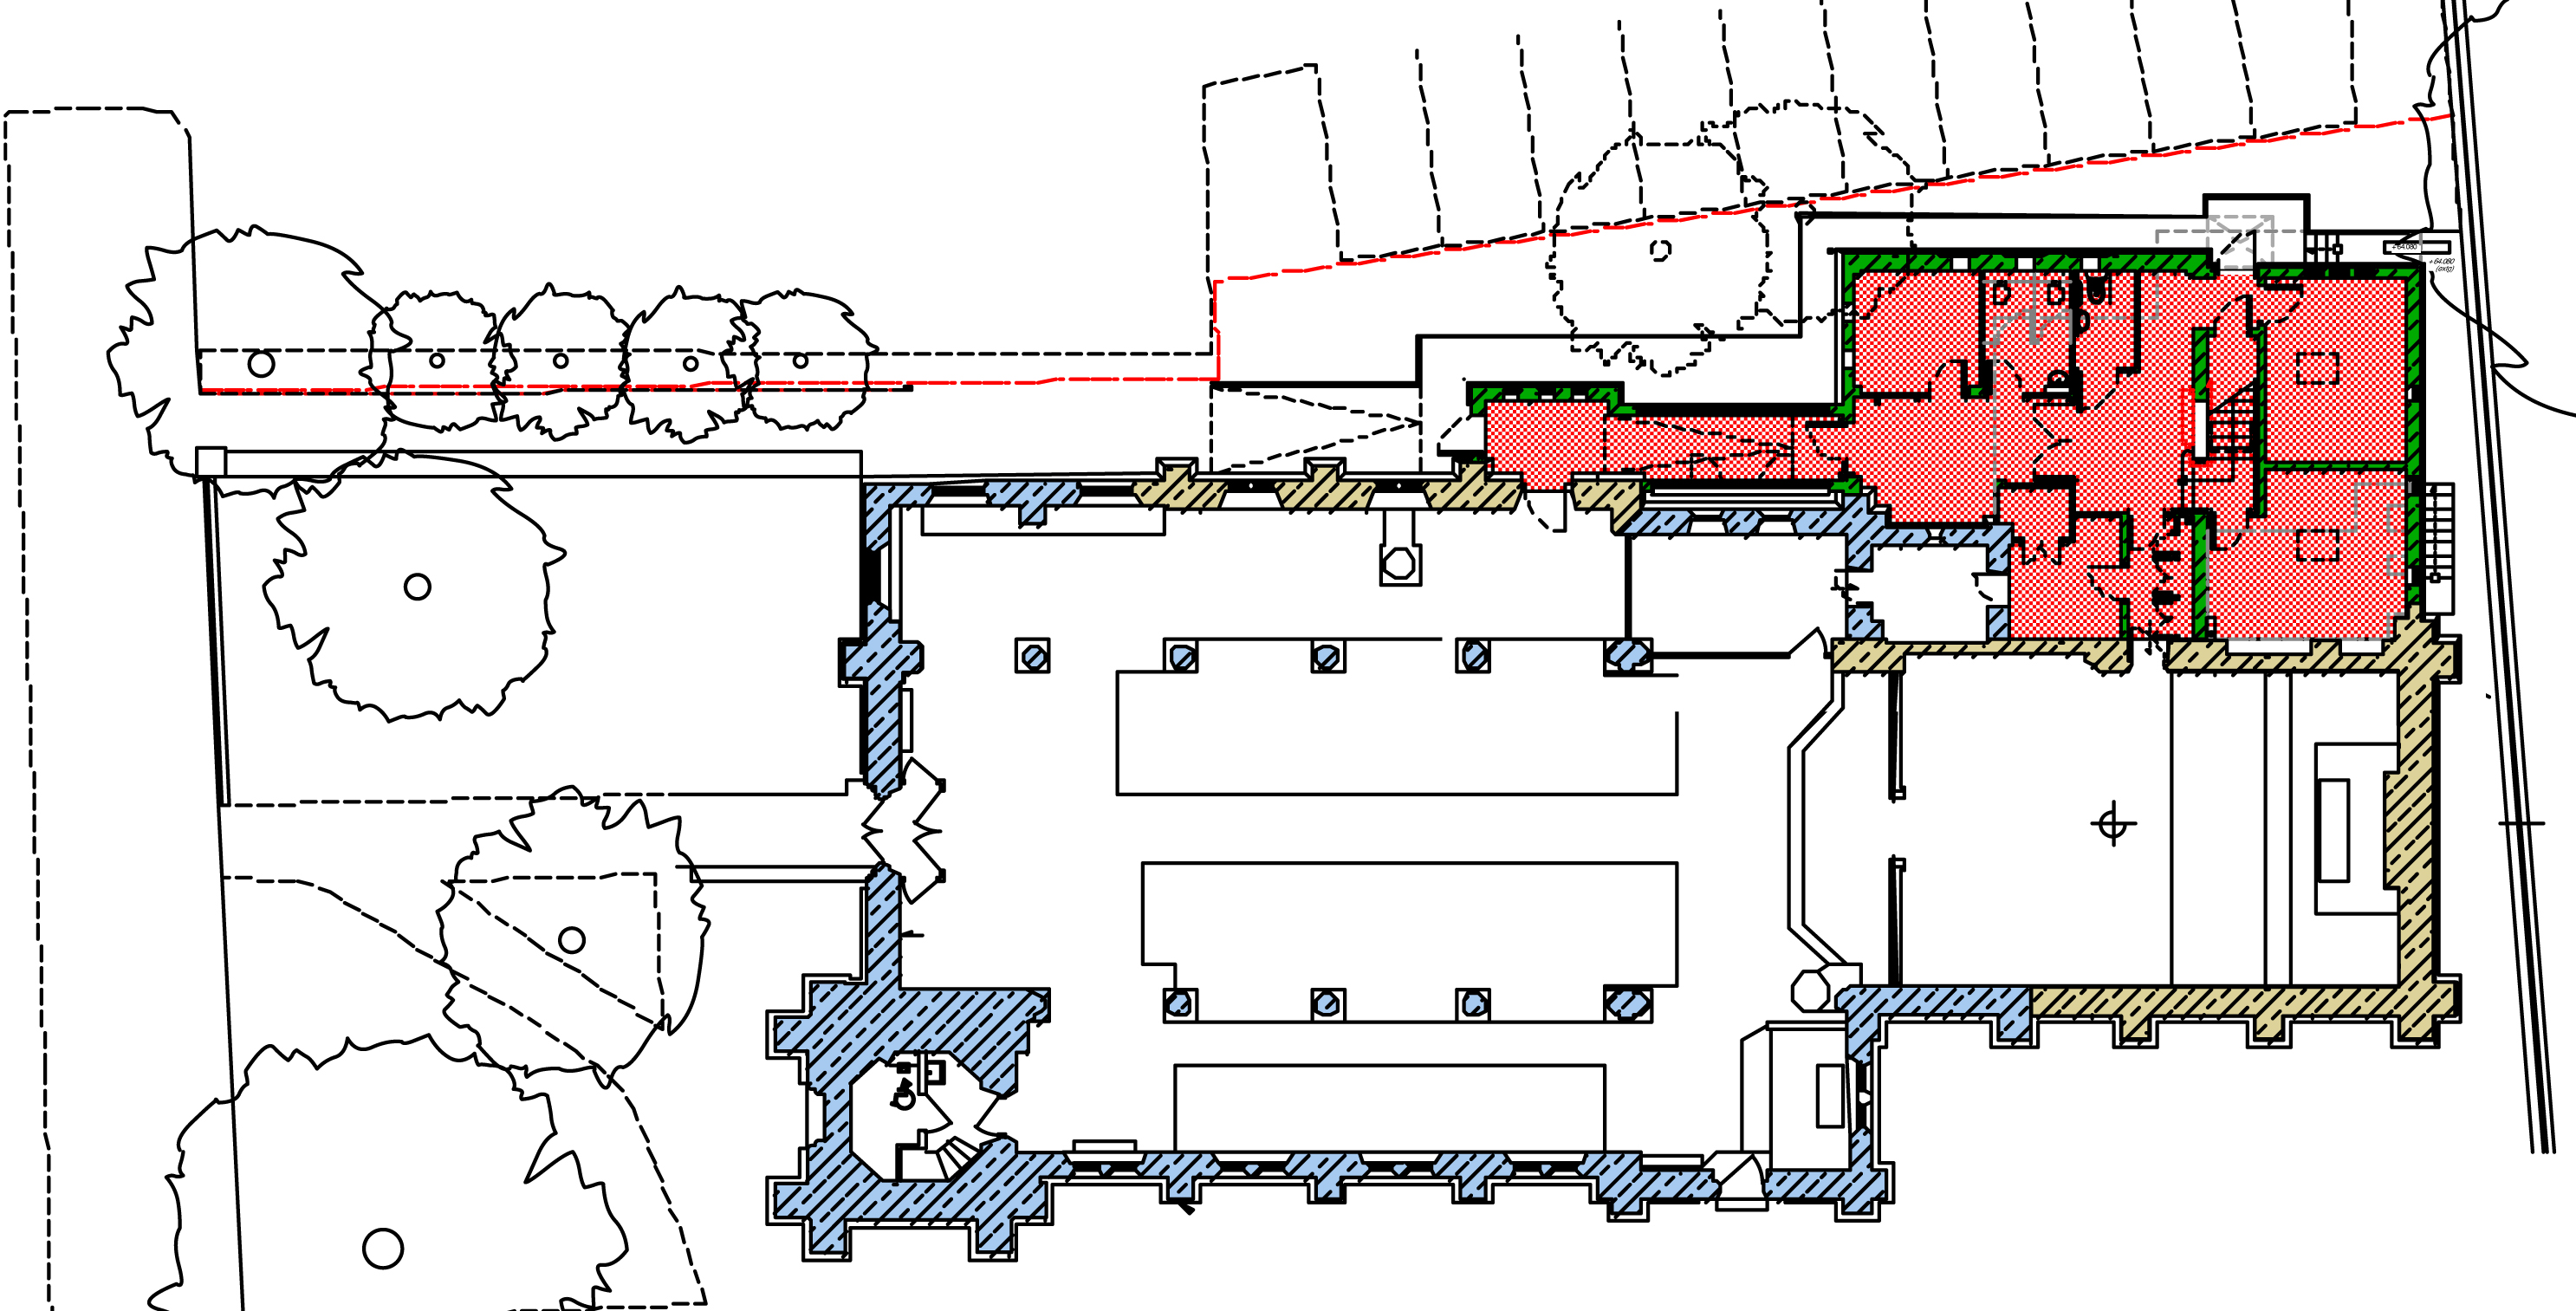 NPT01 Plan Drawing 01.jpg